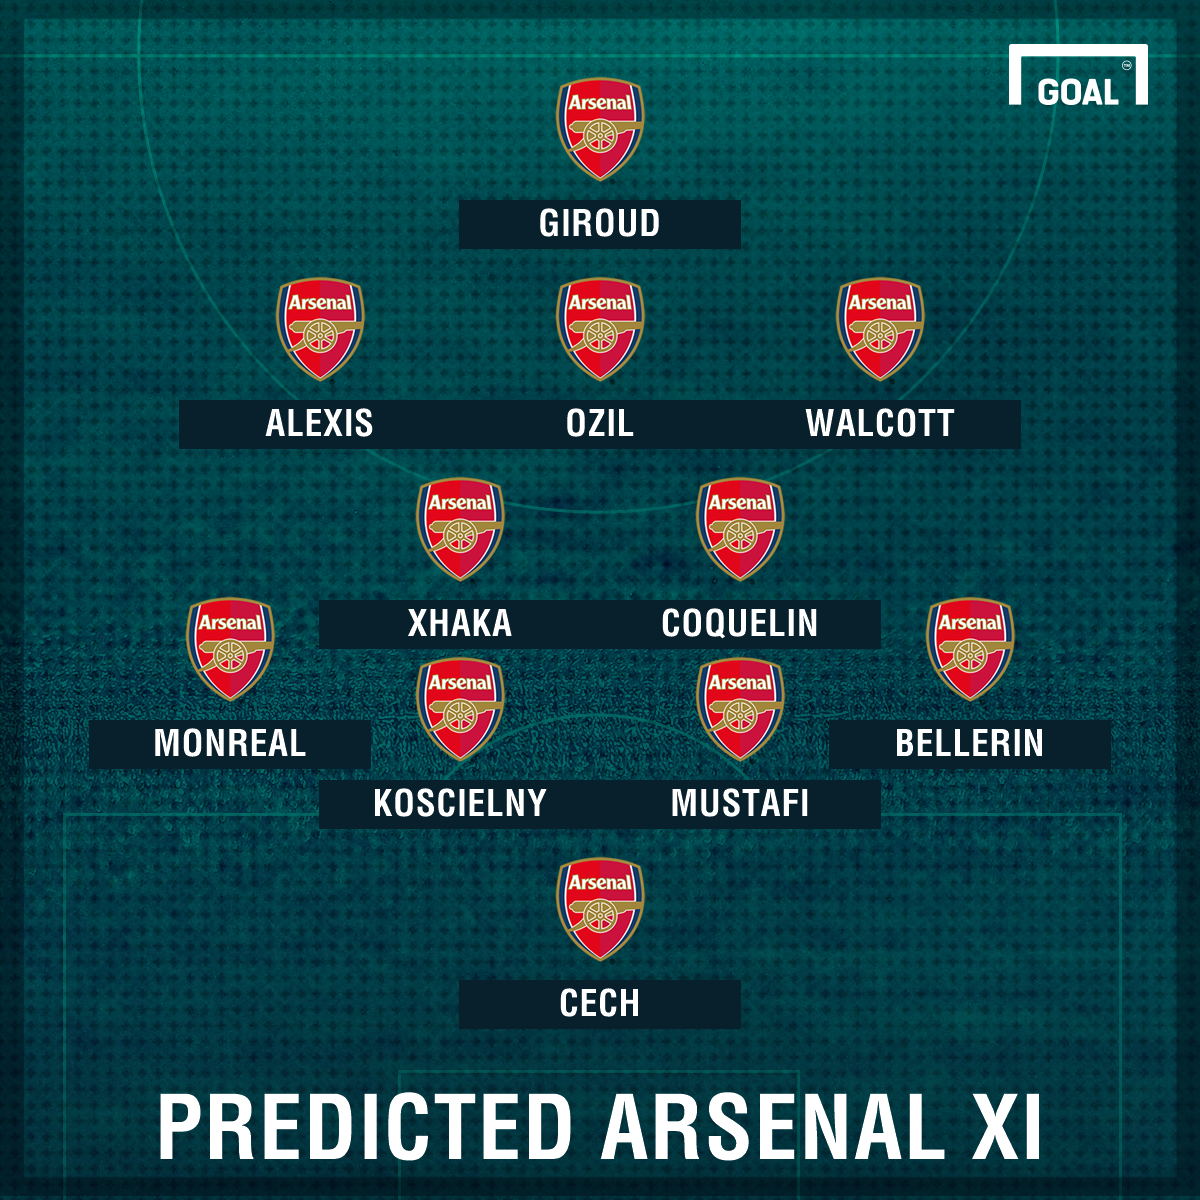 Predicted Arsenal XI